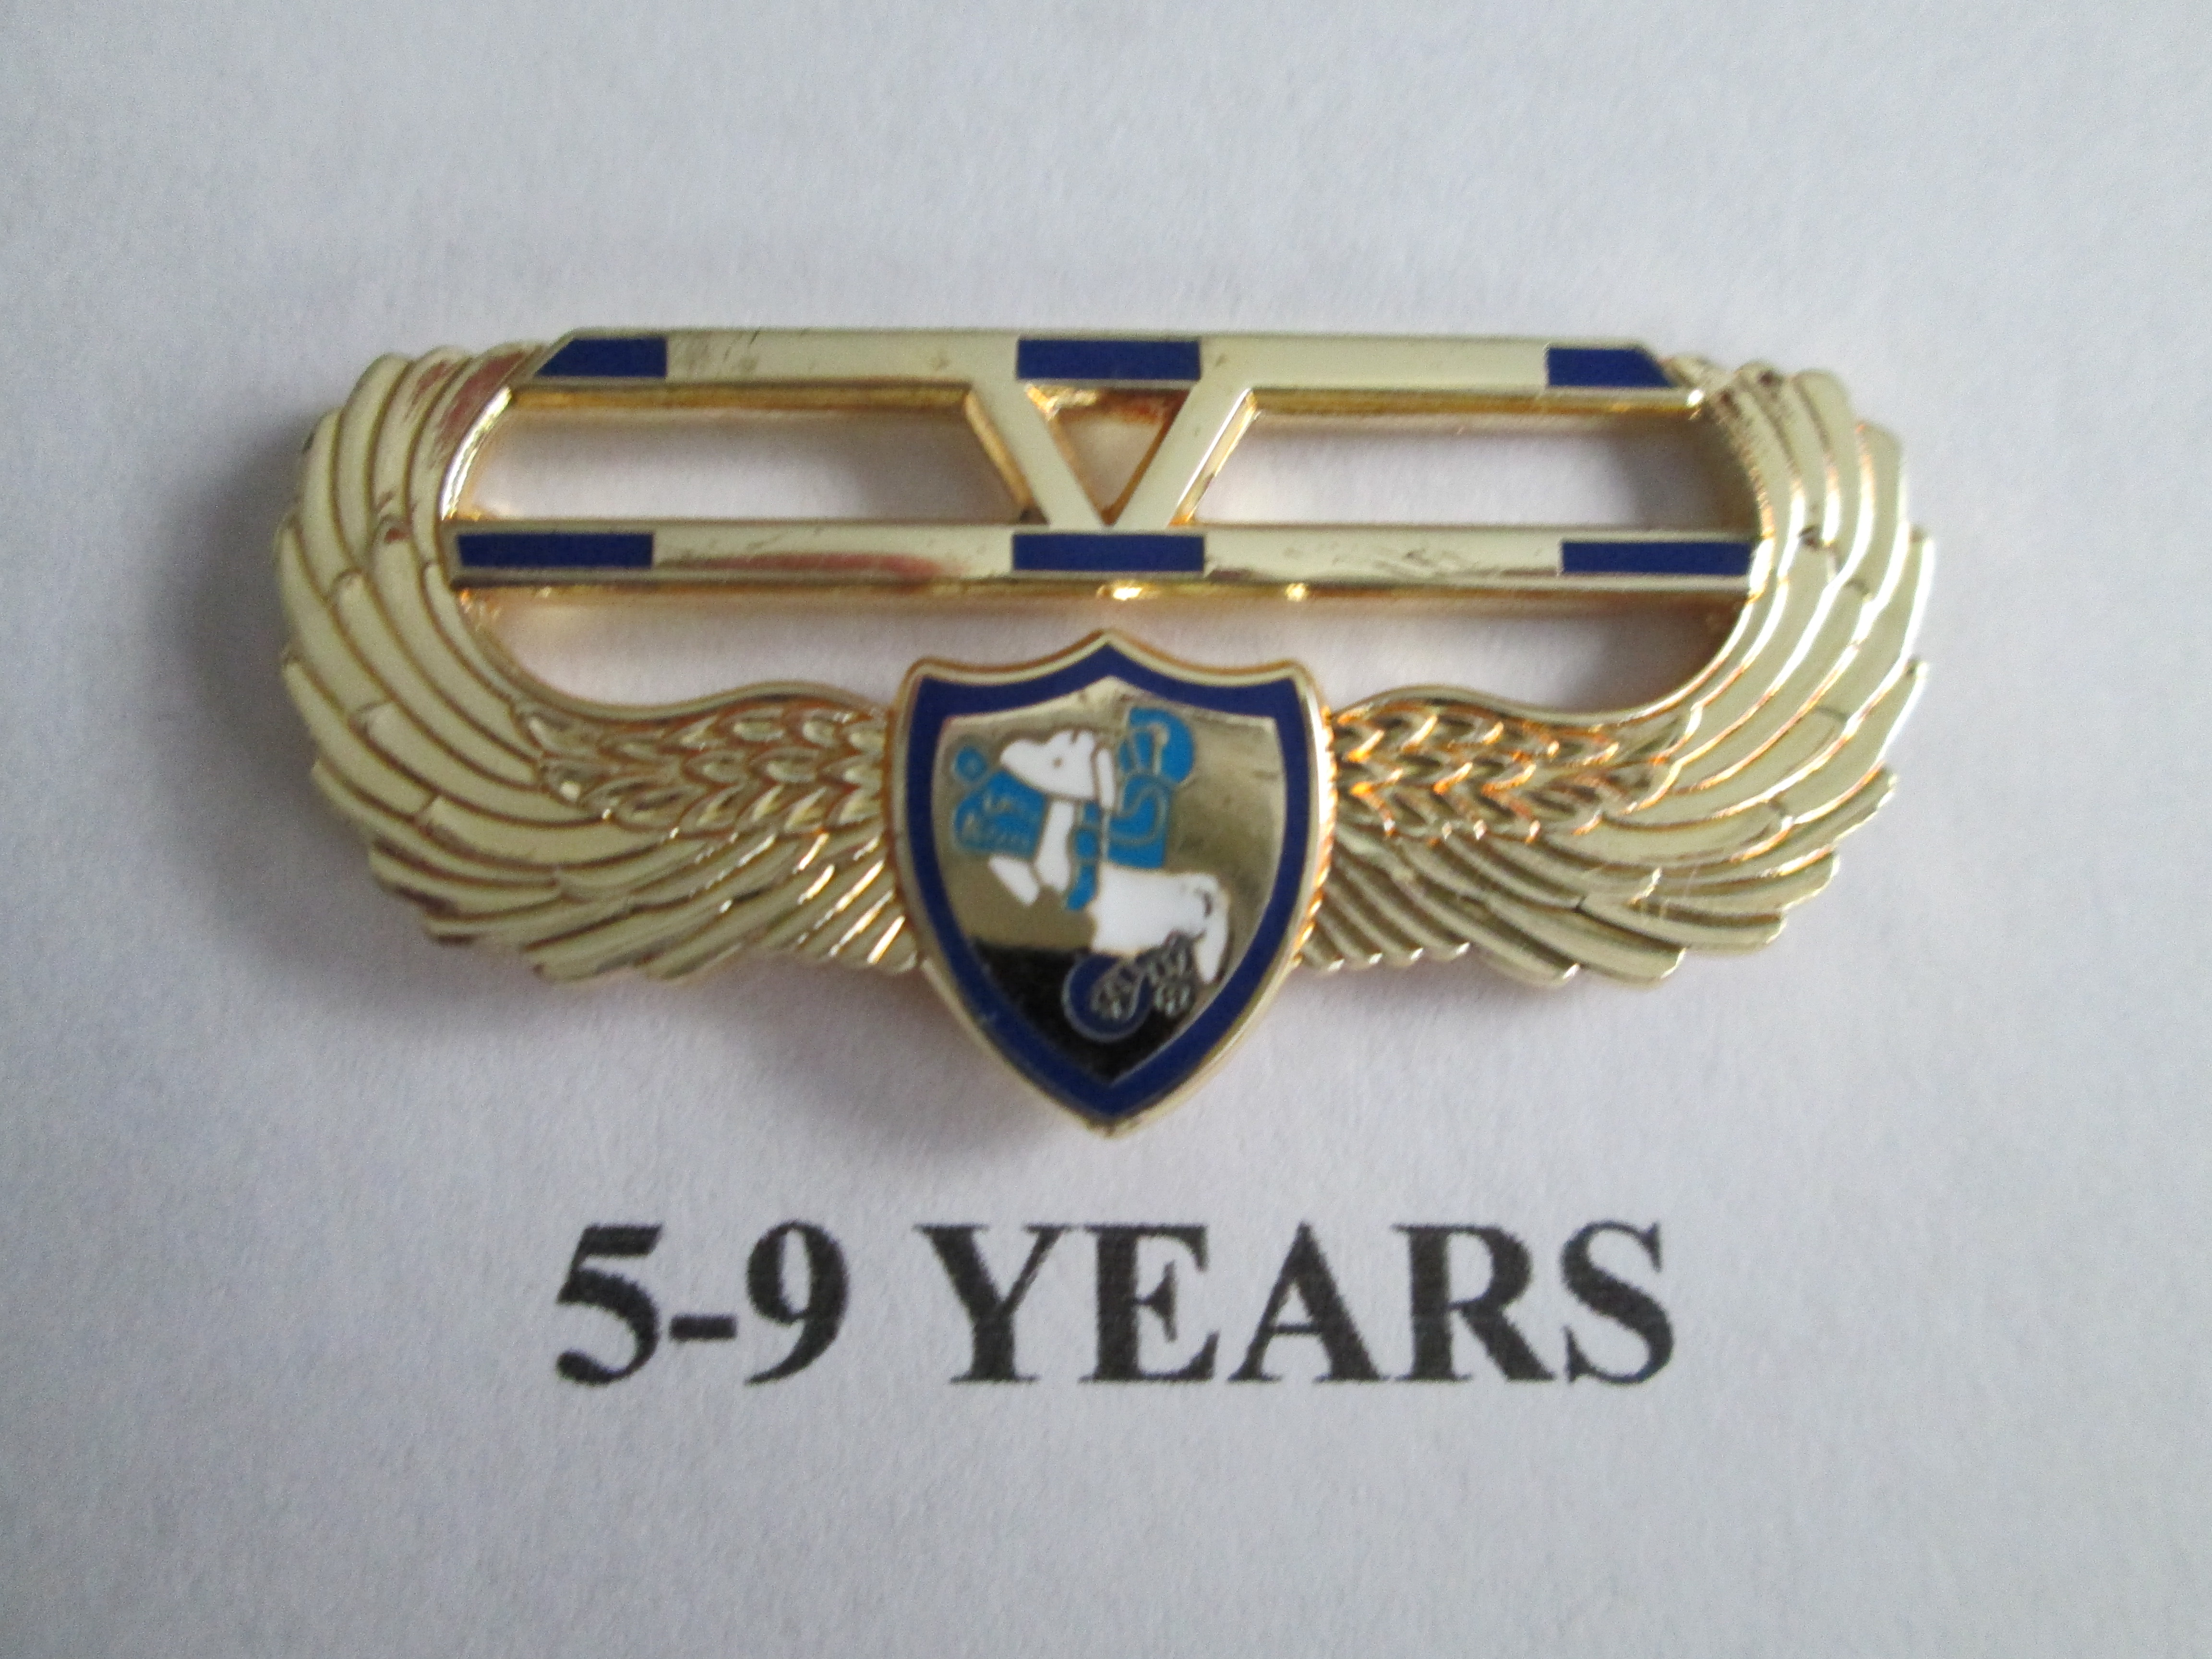 chapter_pins__5___9_years_of_service